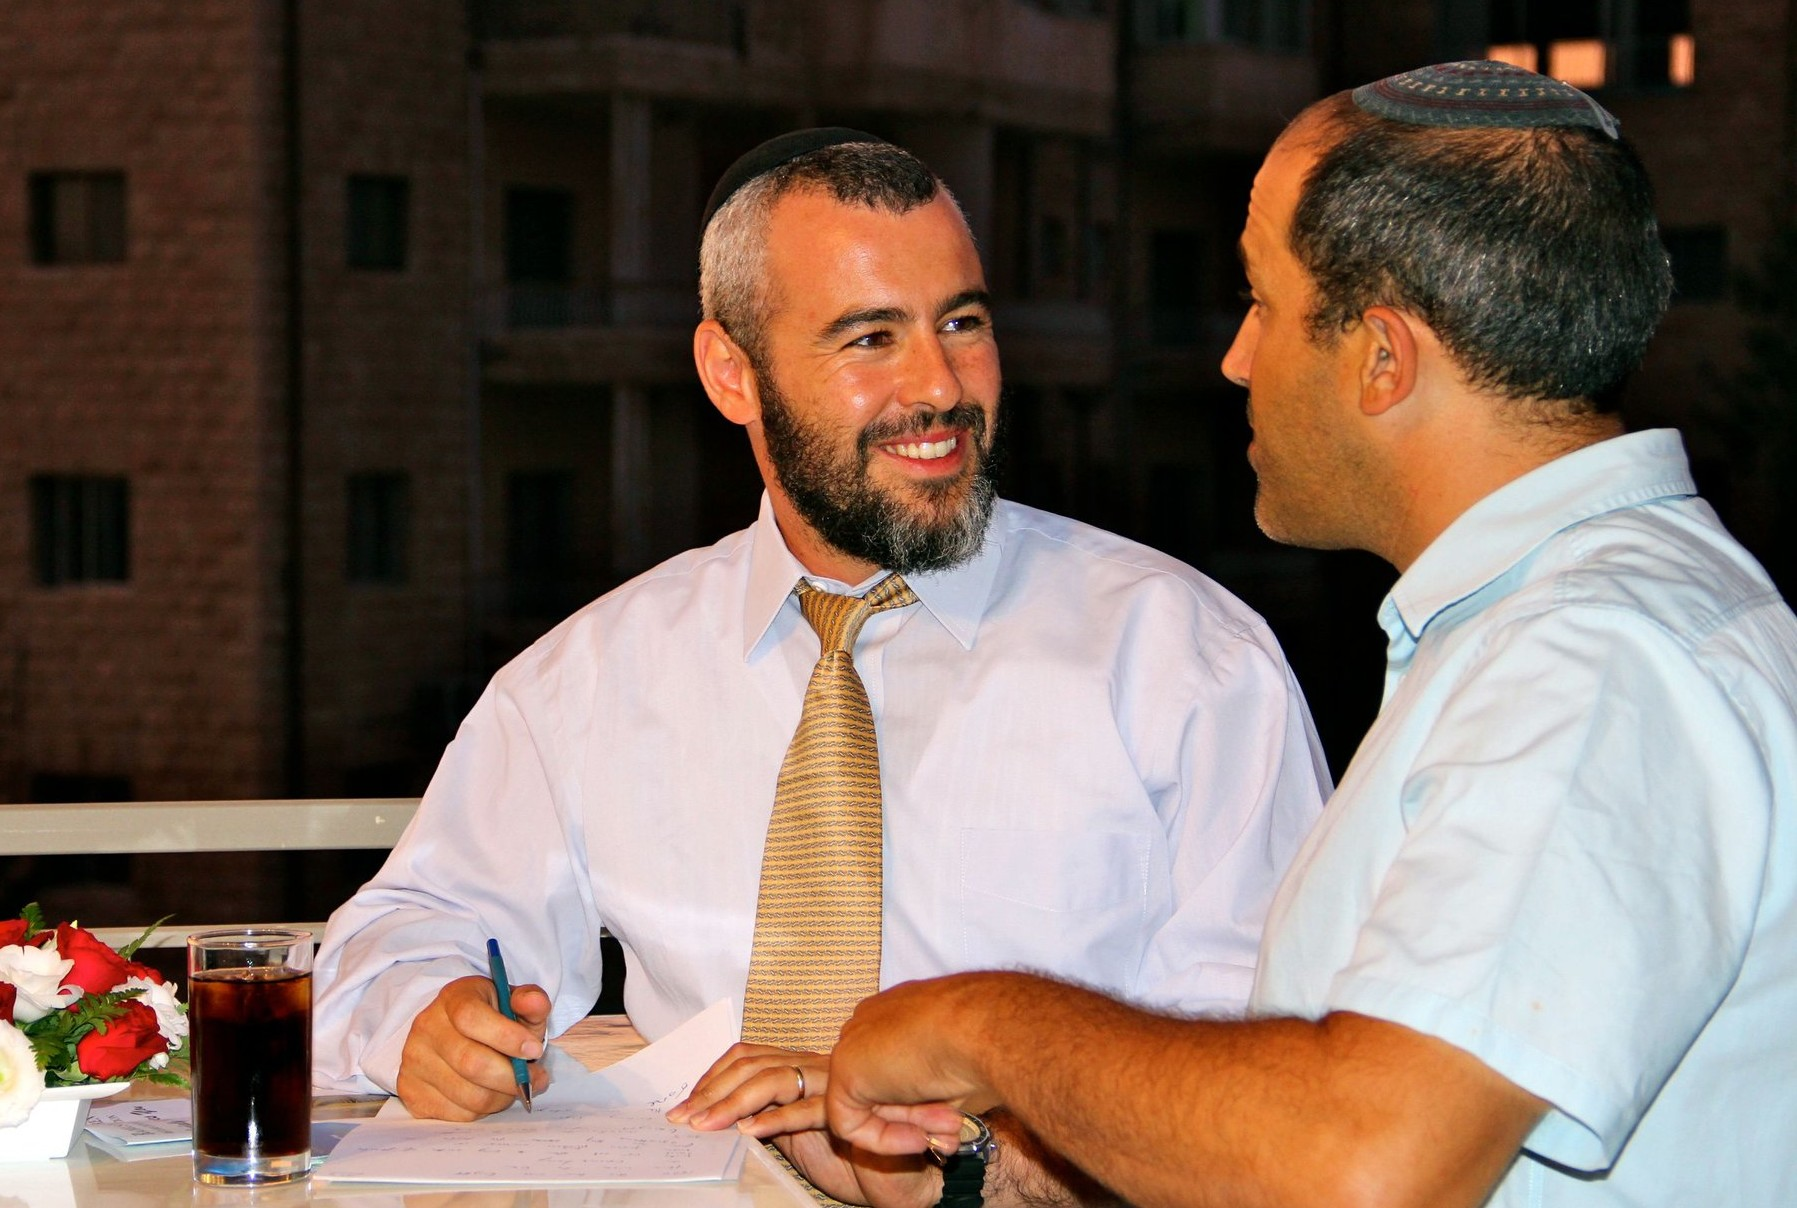 Yishai Fleisher and Aryeh King discussing Jerusalem